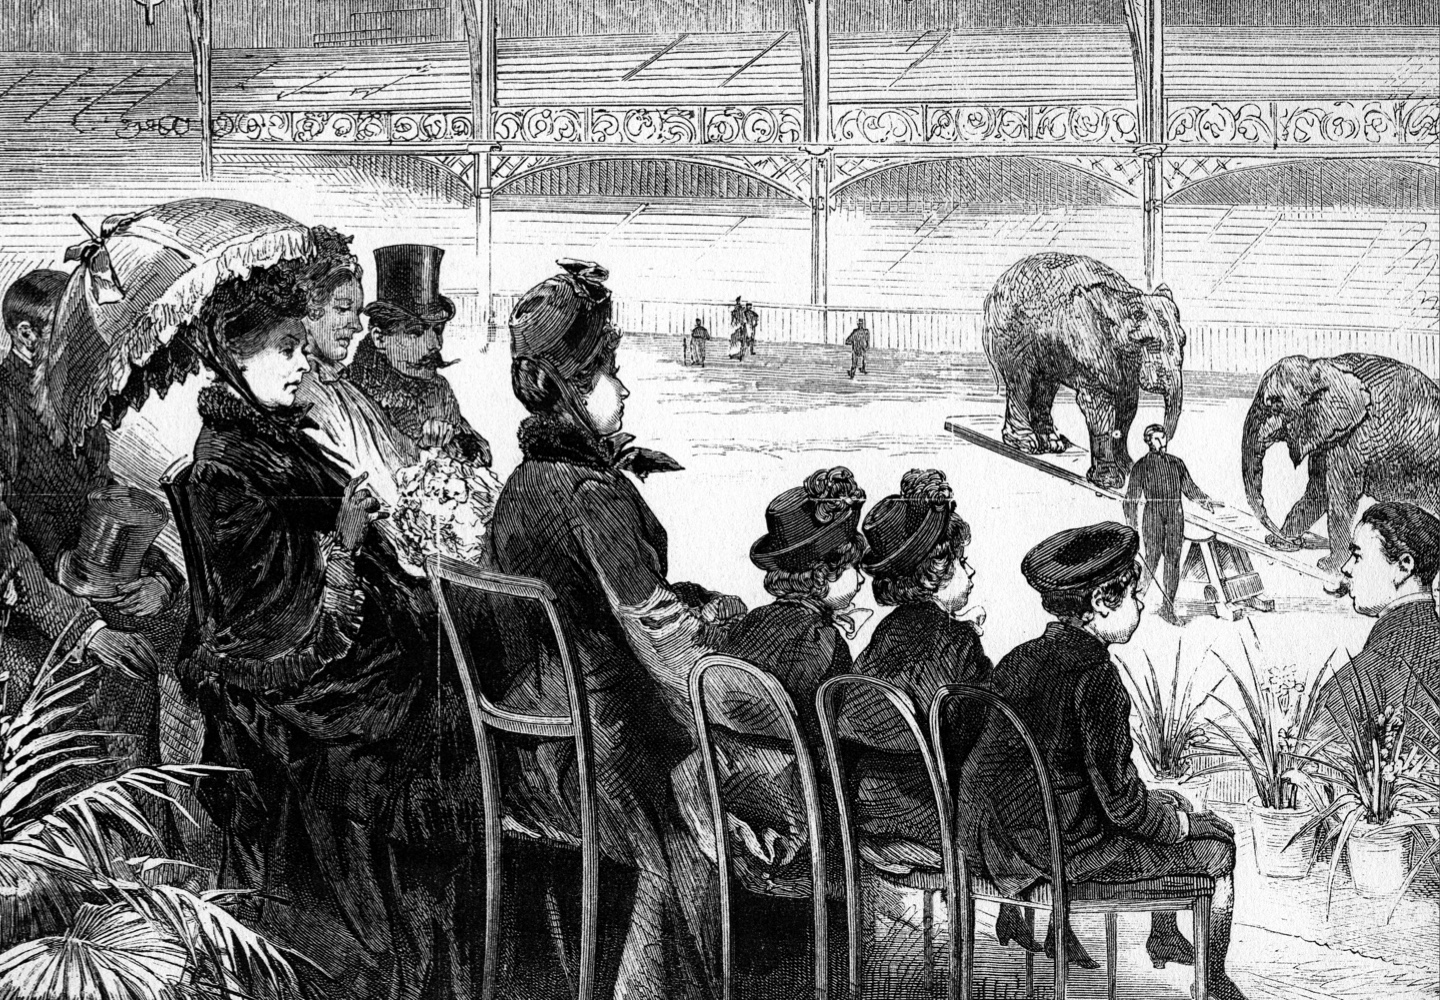 Queen Victoria and some of her grandchildren watch a display of elephants at the circus. In this period, you did not have to travel far to see wild animals, writes Sugg. (Universal History Archive via Getty Images)